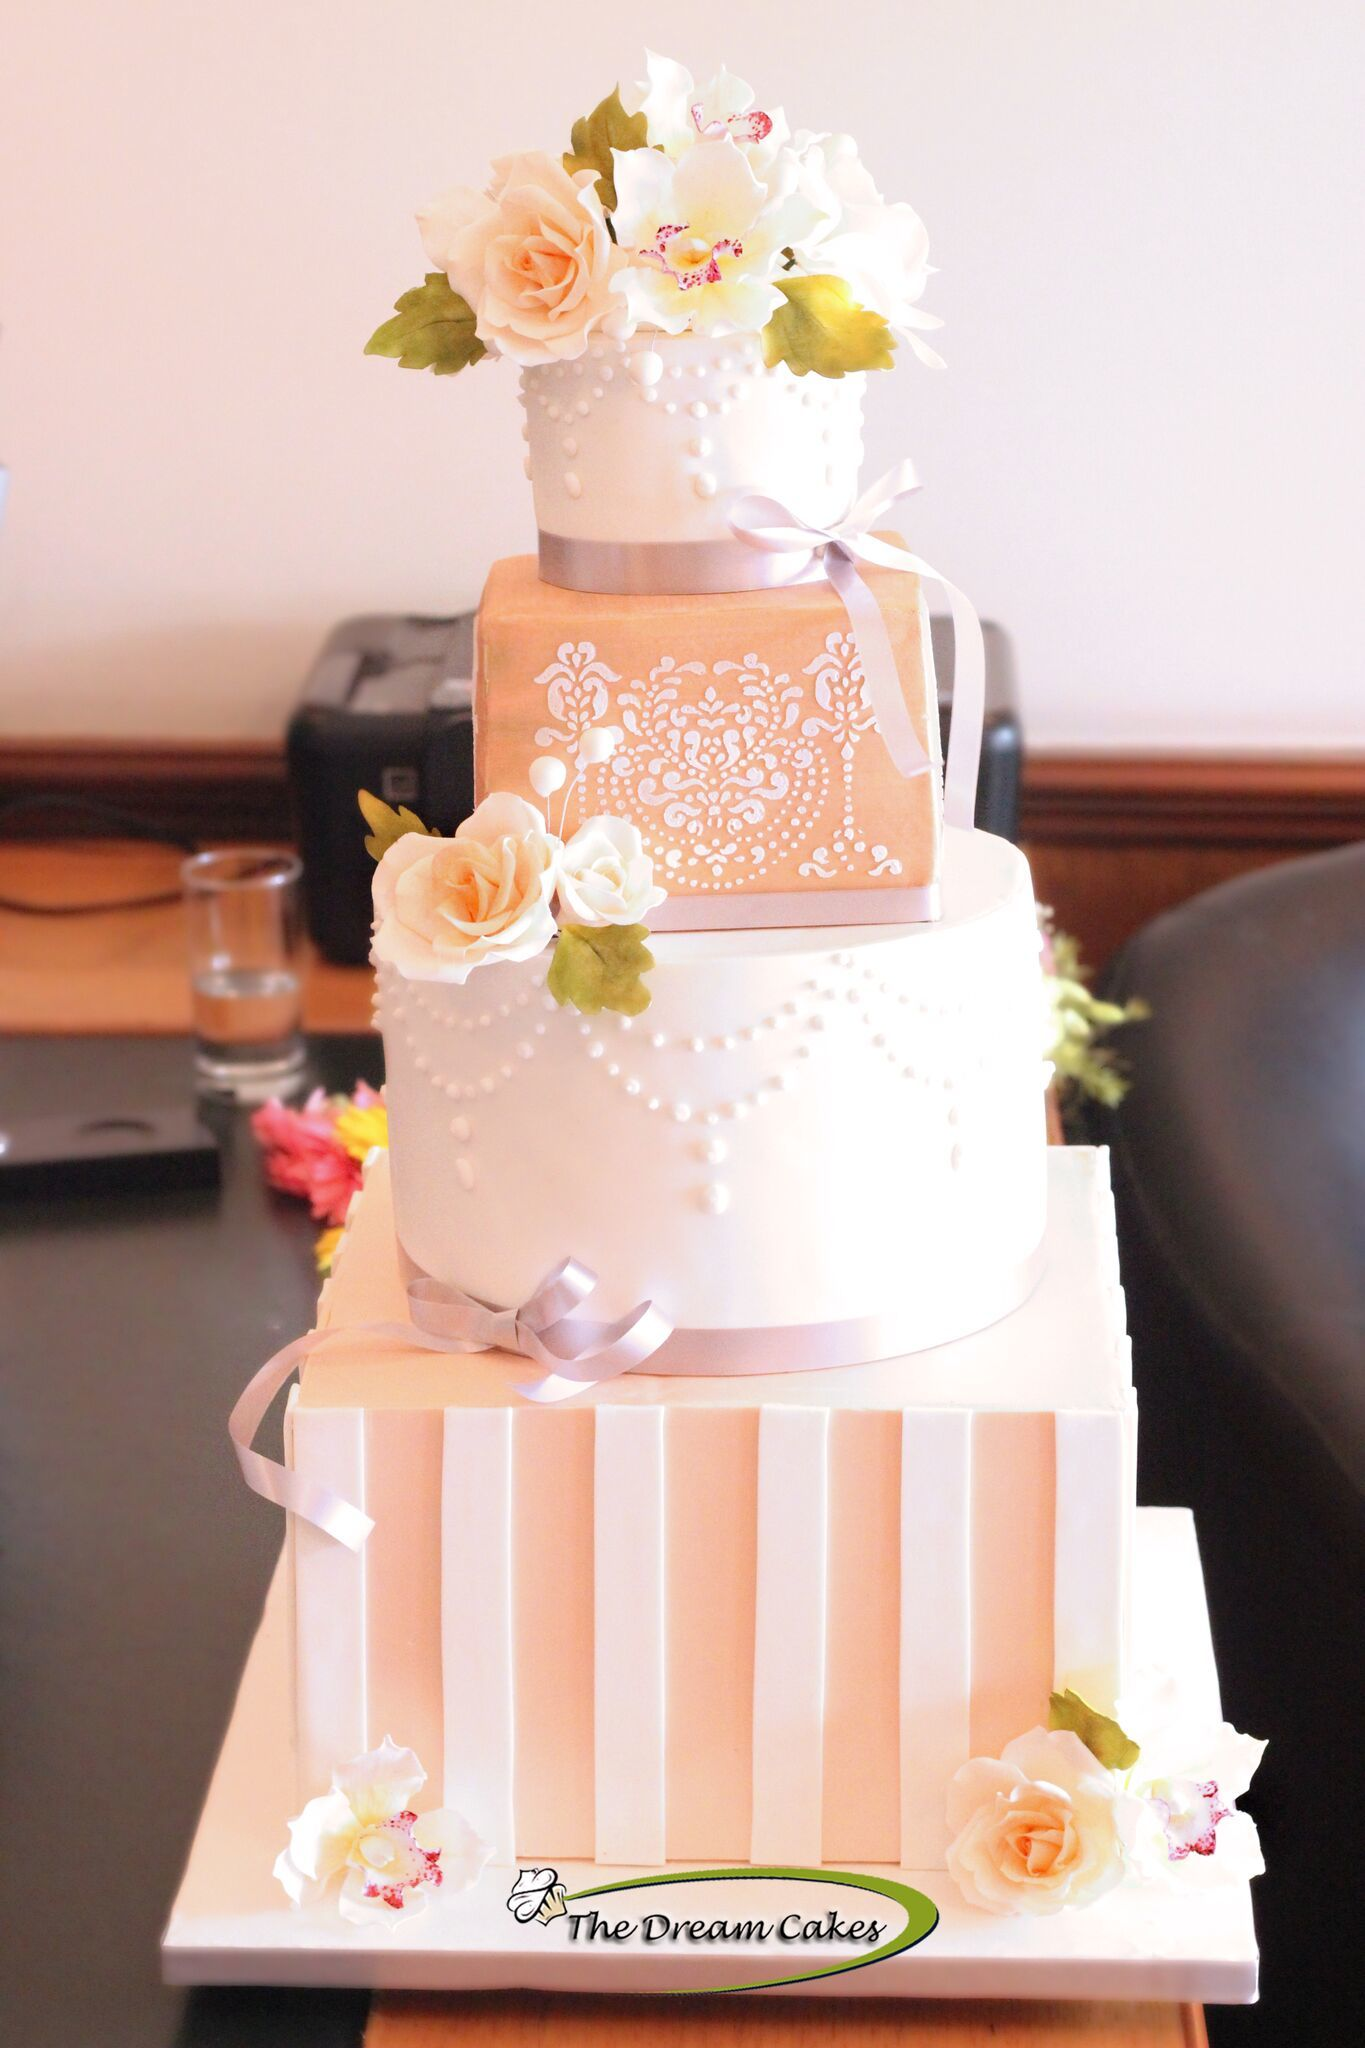 Gift box peach fondant wedding cake